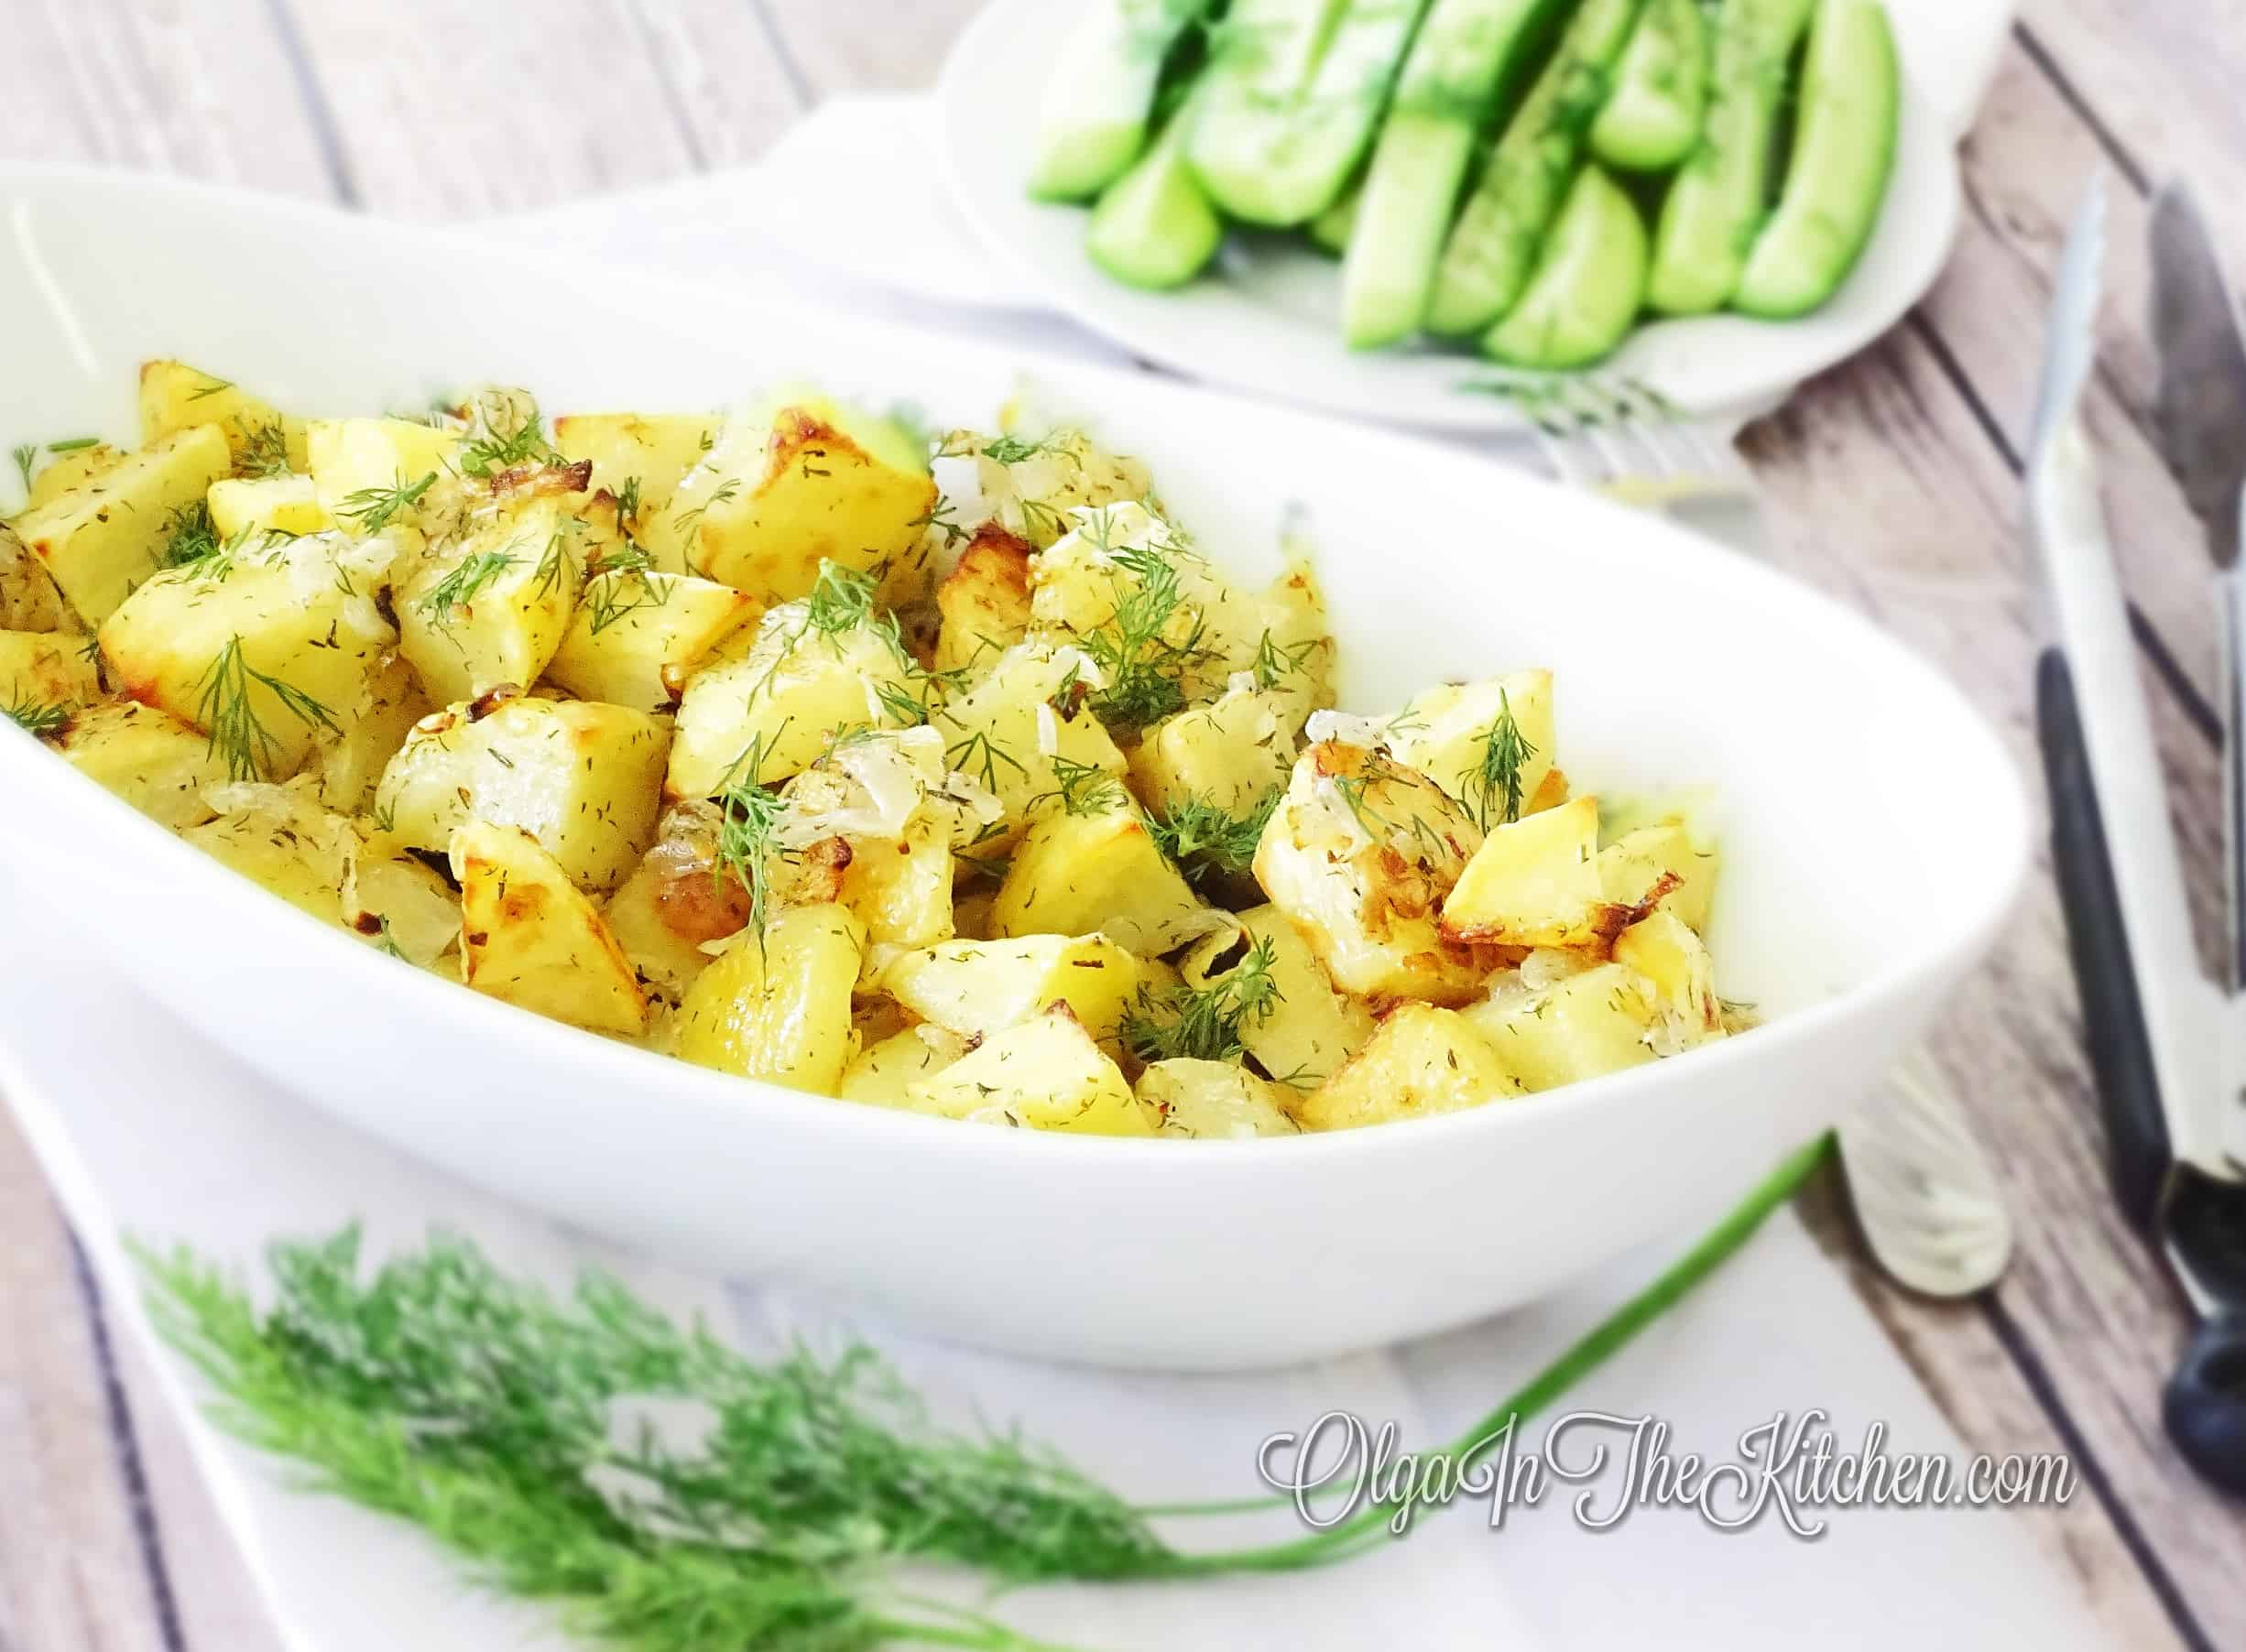 Quick Oven Roasted Potatoes: simple potatoes recipe with combo of dill and thyme herbs to bring out the flavor. | olgainthekitchen.com